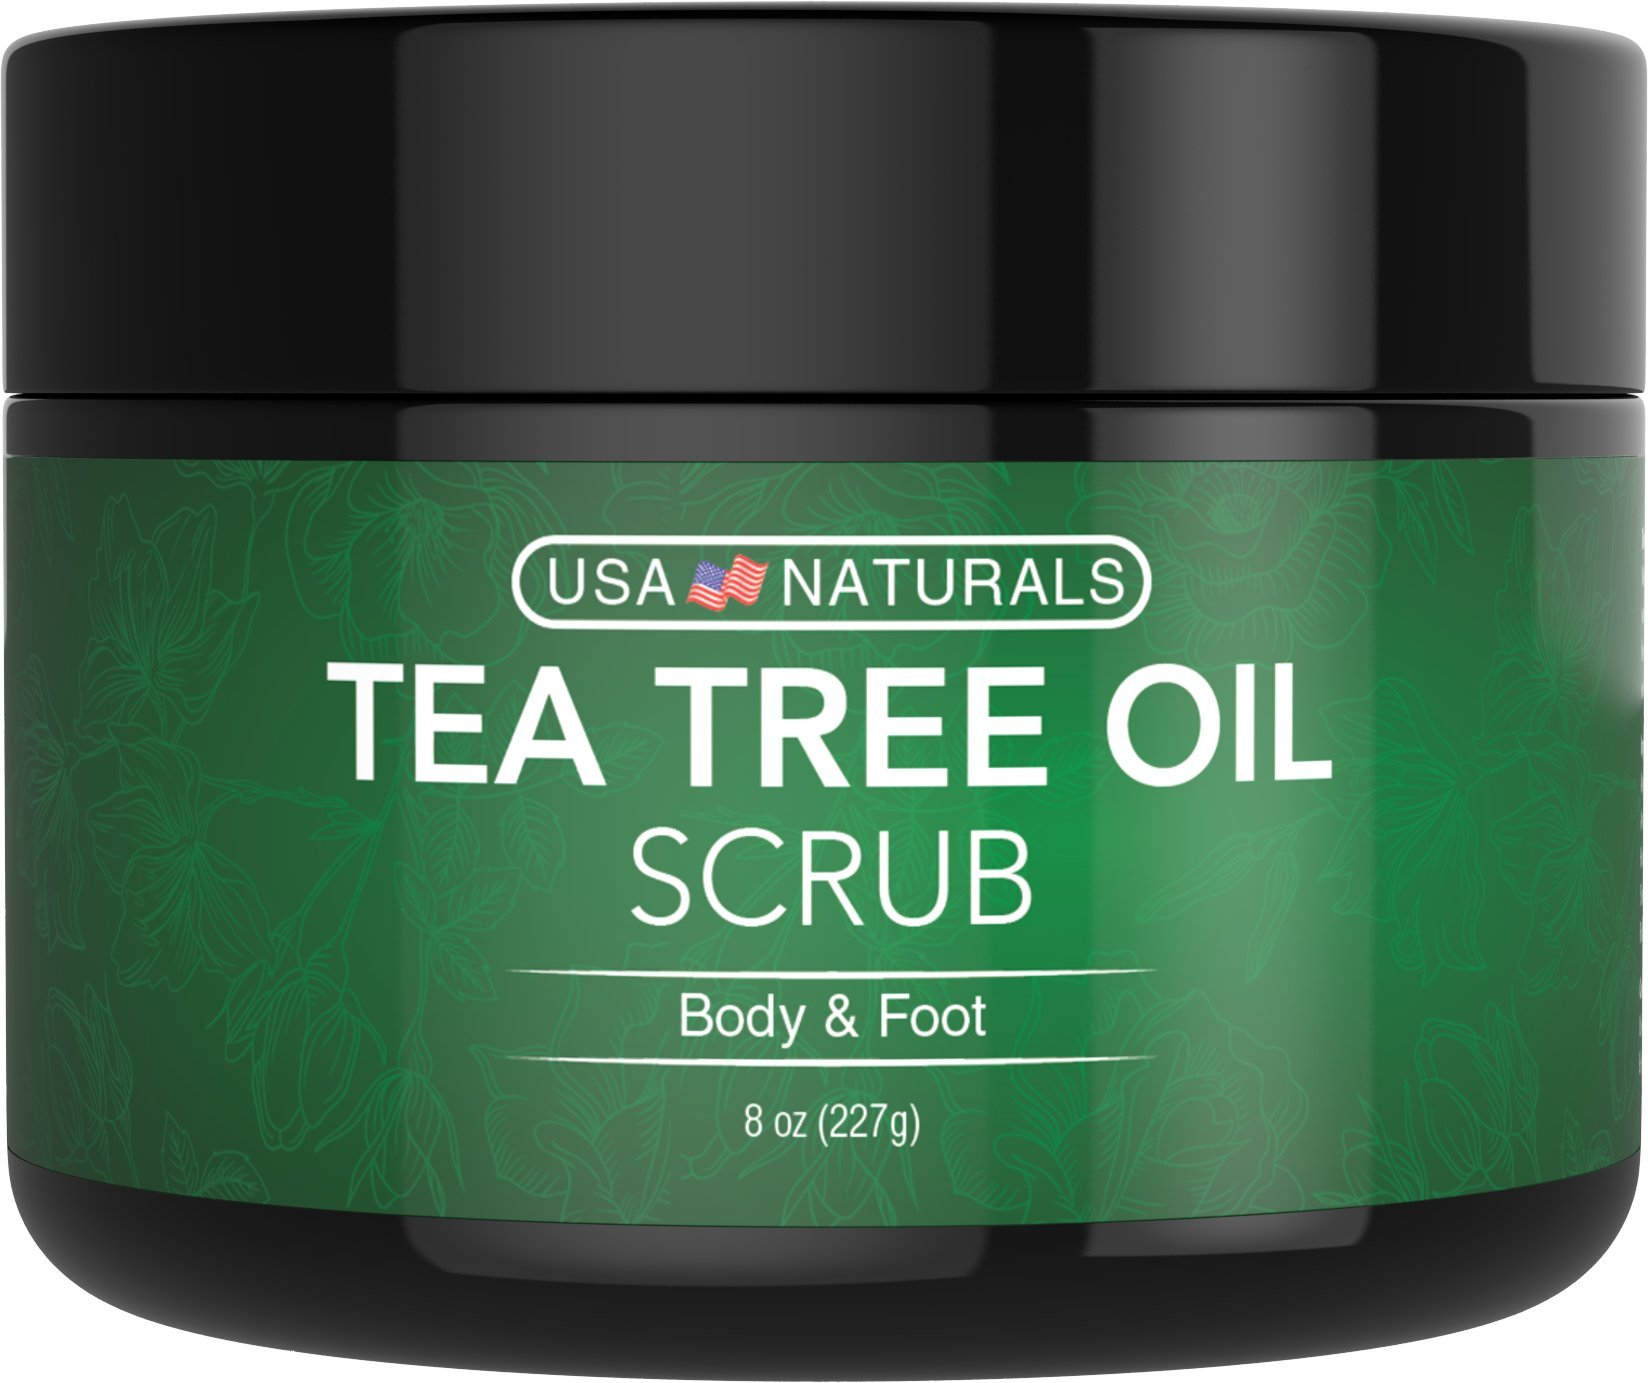 Tea Tree Oil Foot and Body Scrub - Antifungal Treatment - Exfoliating Scrub with a Unique Blend of Essential Oils - Smooths Calluses - Helps With Athlete's Foot, Acne, Jock Itch & Dead, Dry Skin